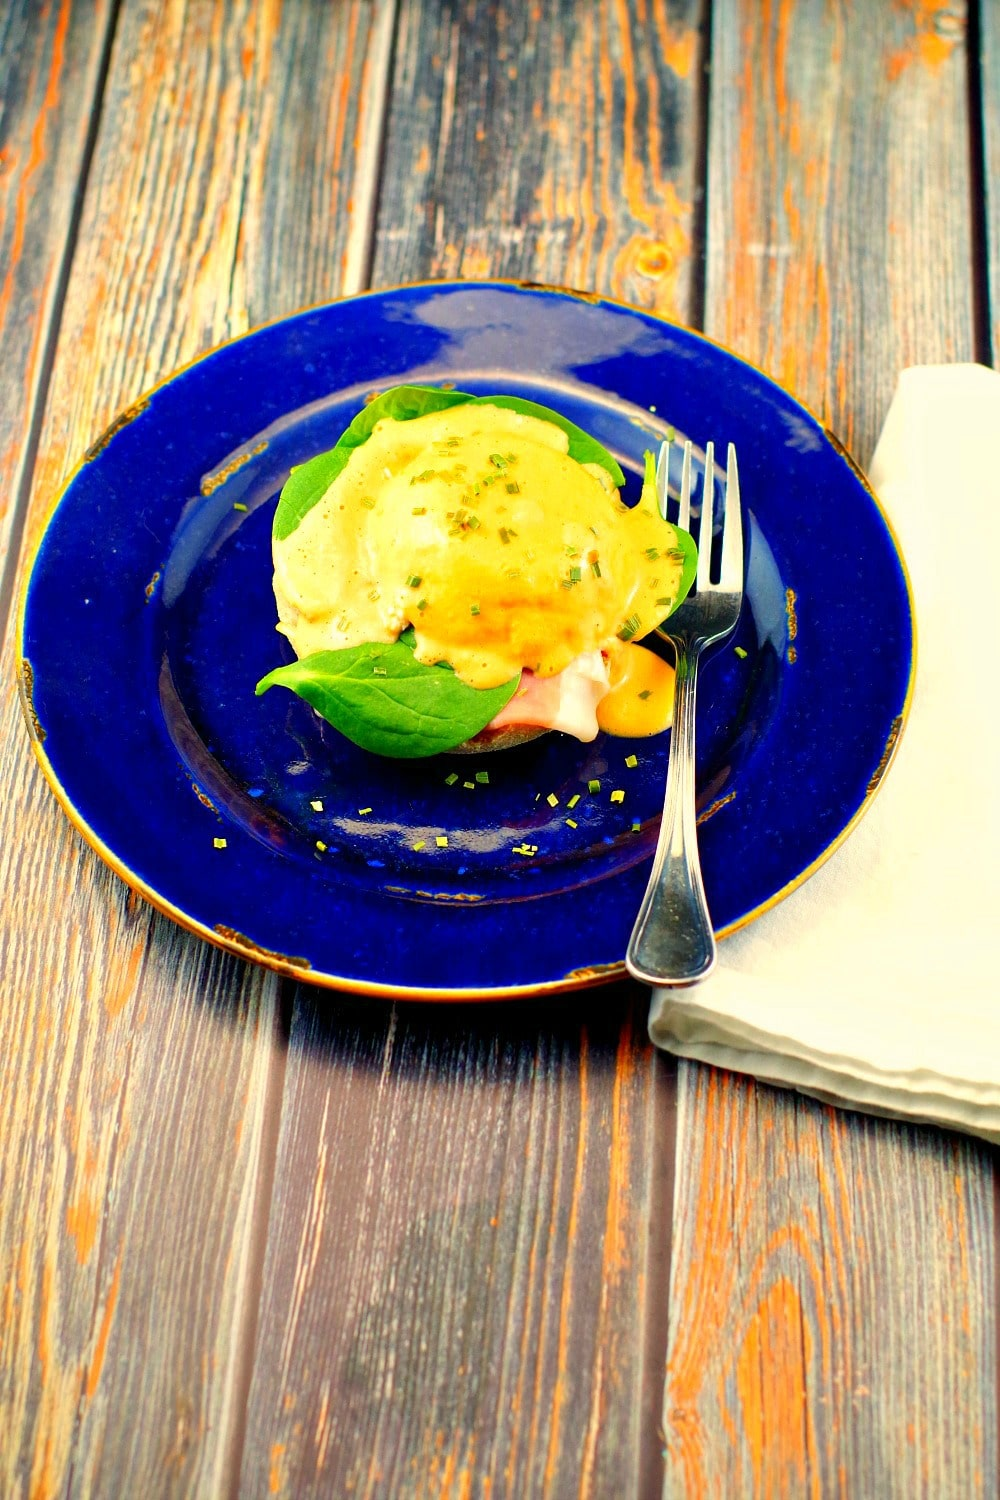 eggs benedict on a blue plate on wooden surface